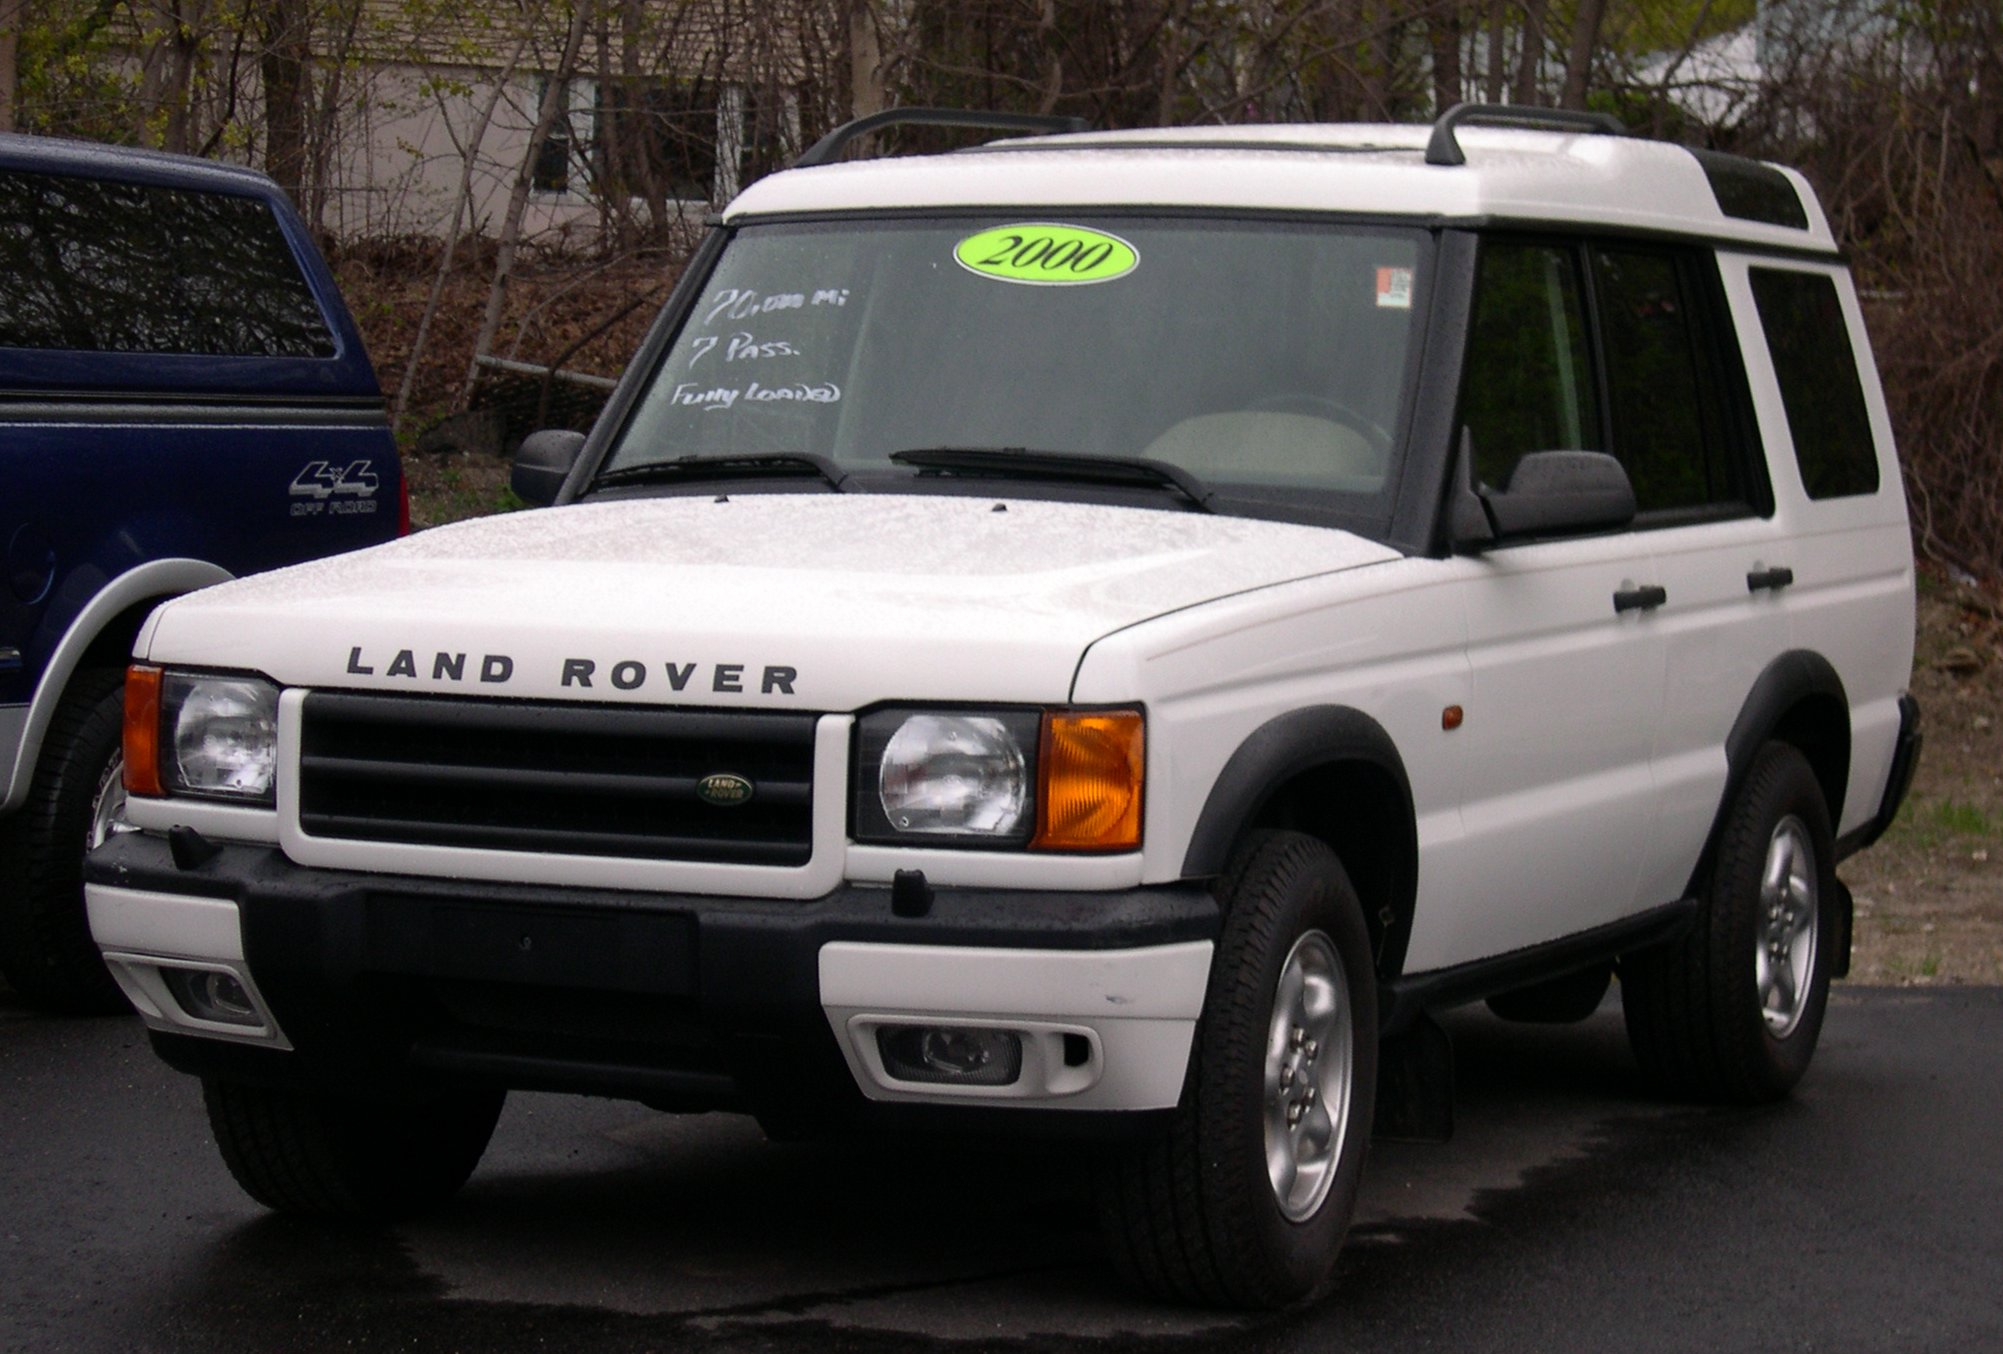 File:2000 Land Rover Discovery white.jpg - Wikimedia Commons